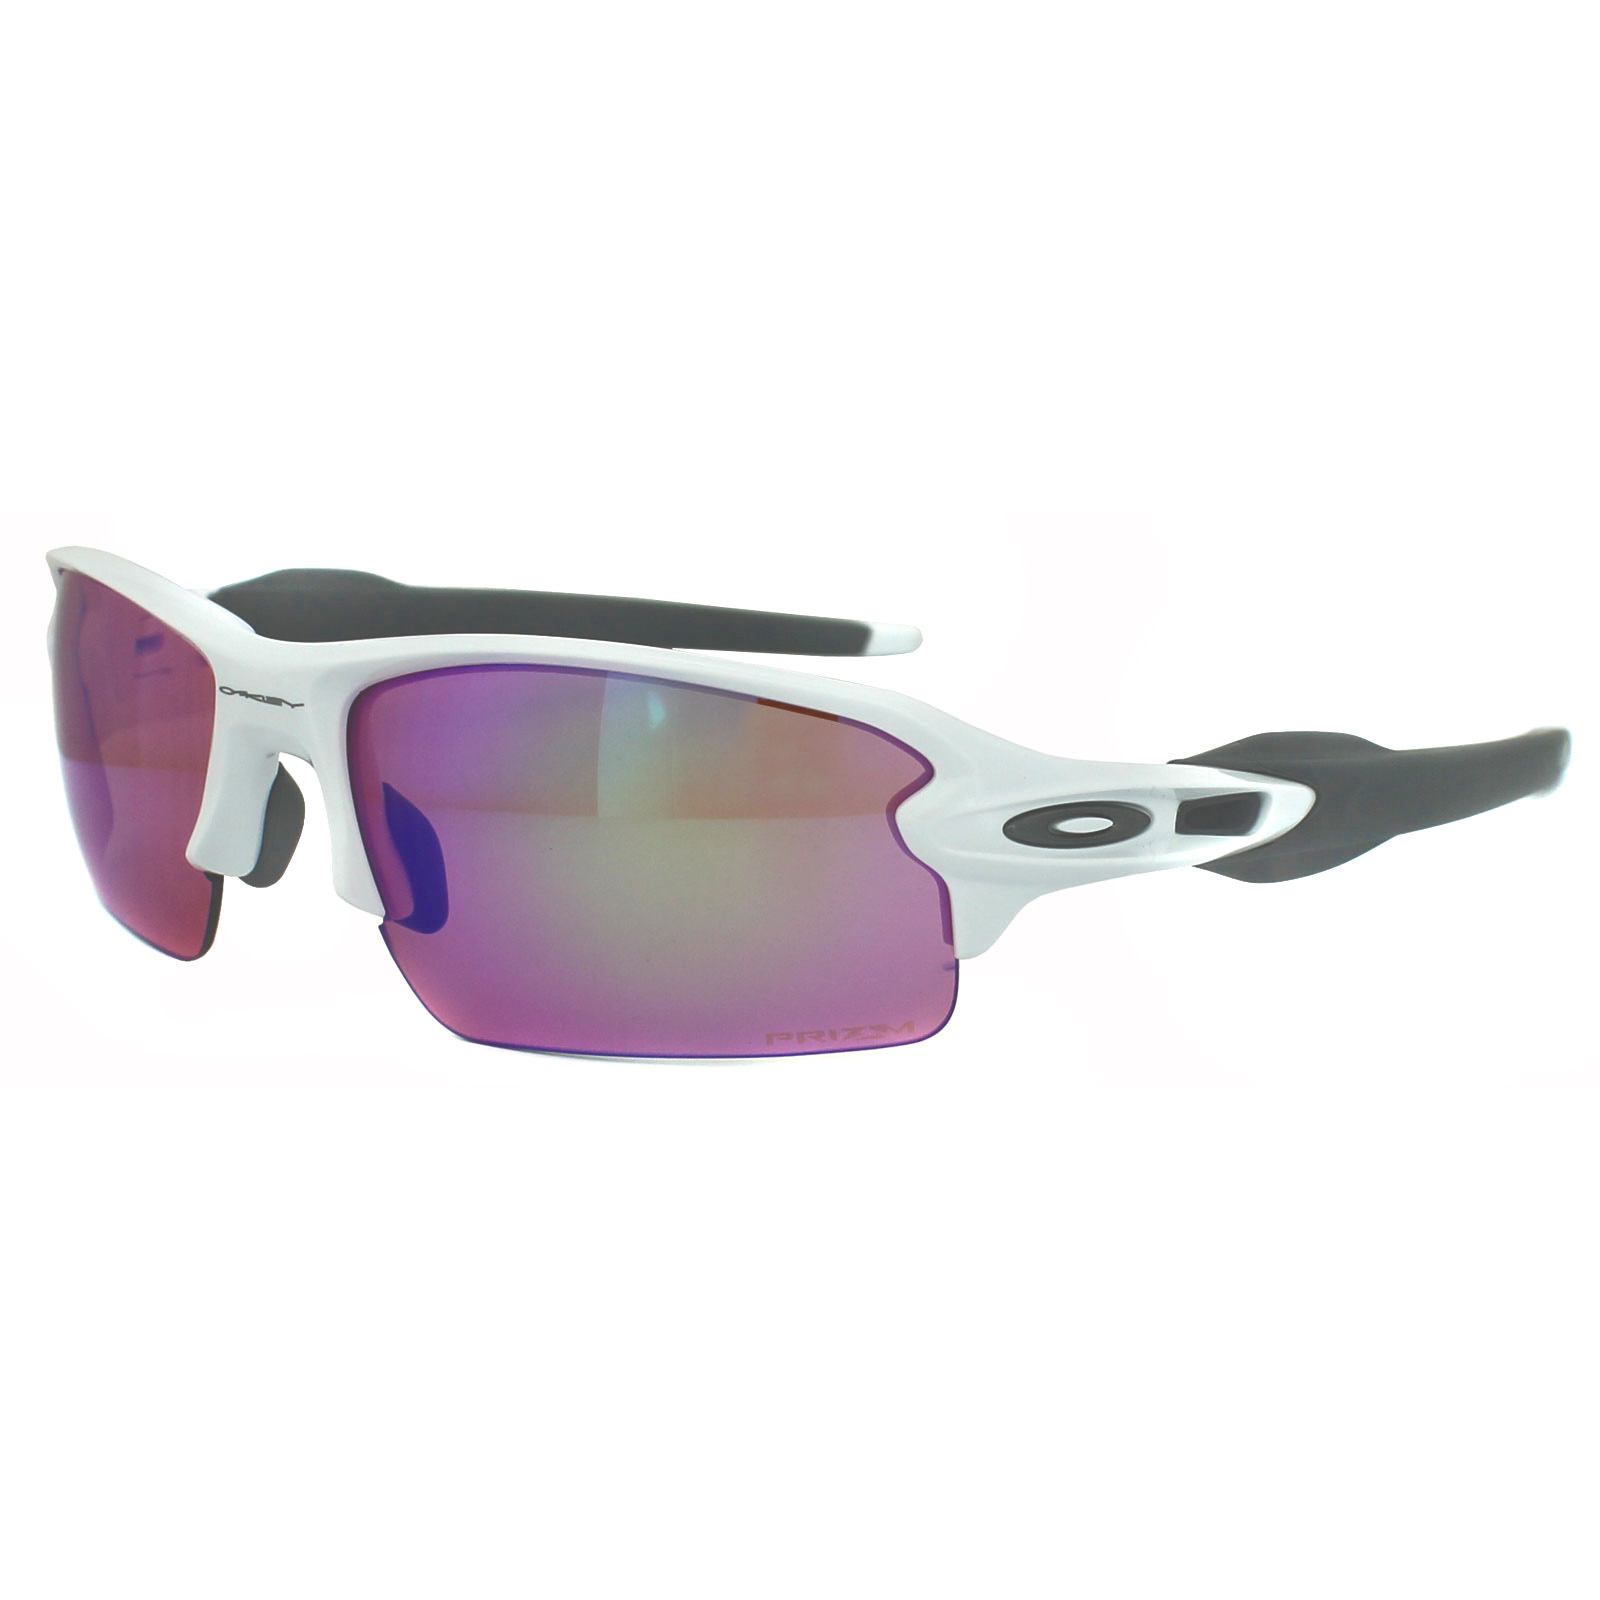 golf sunglasses oakley tacx  golf sunglasses oakley